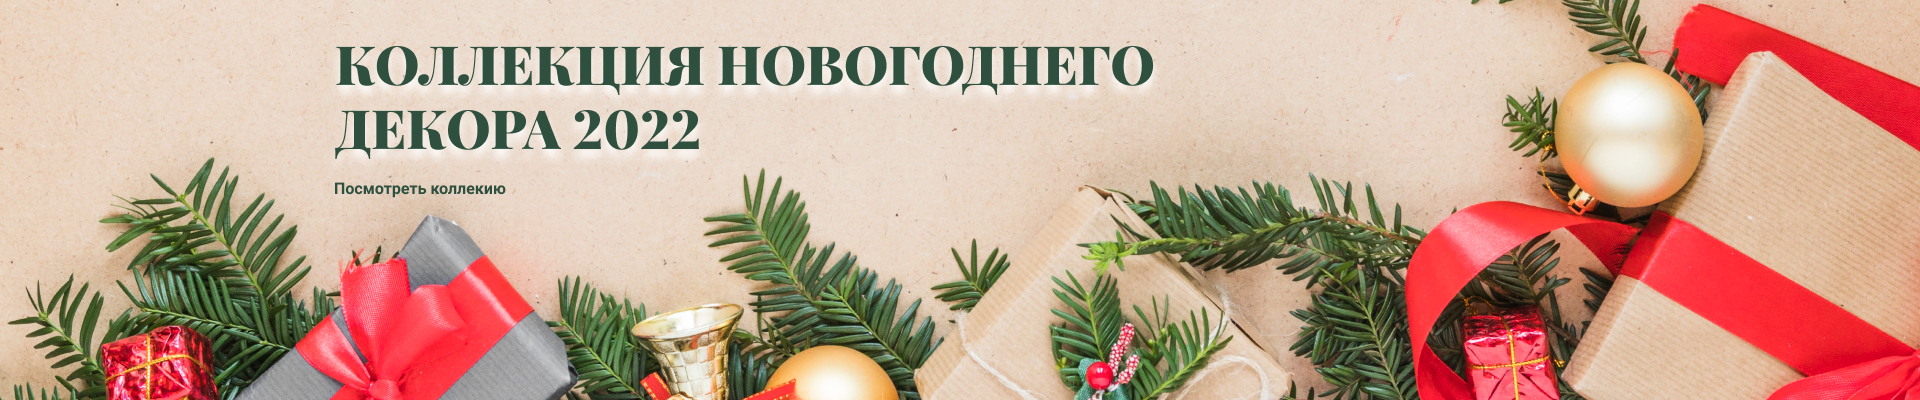 collection_of_new_Year_decor_2022